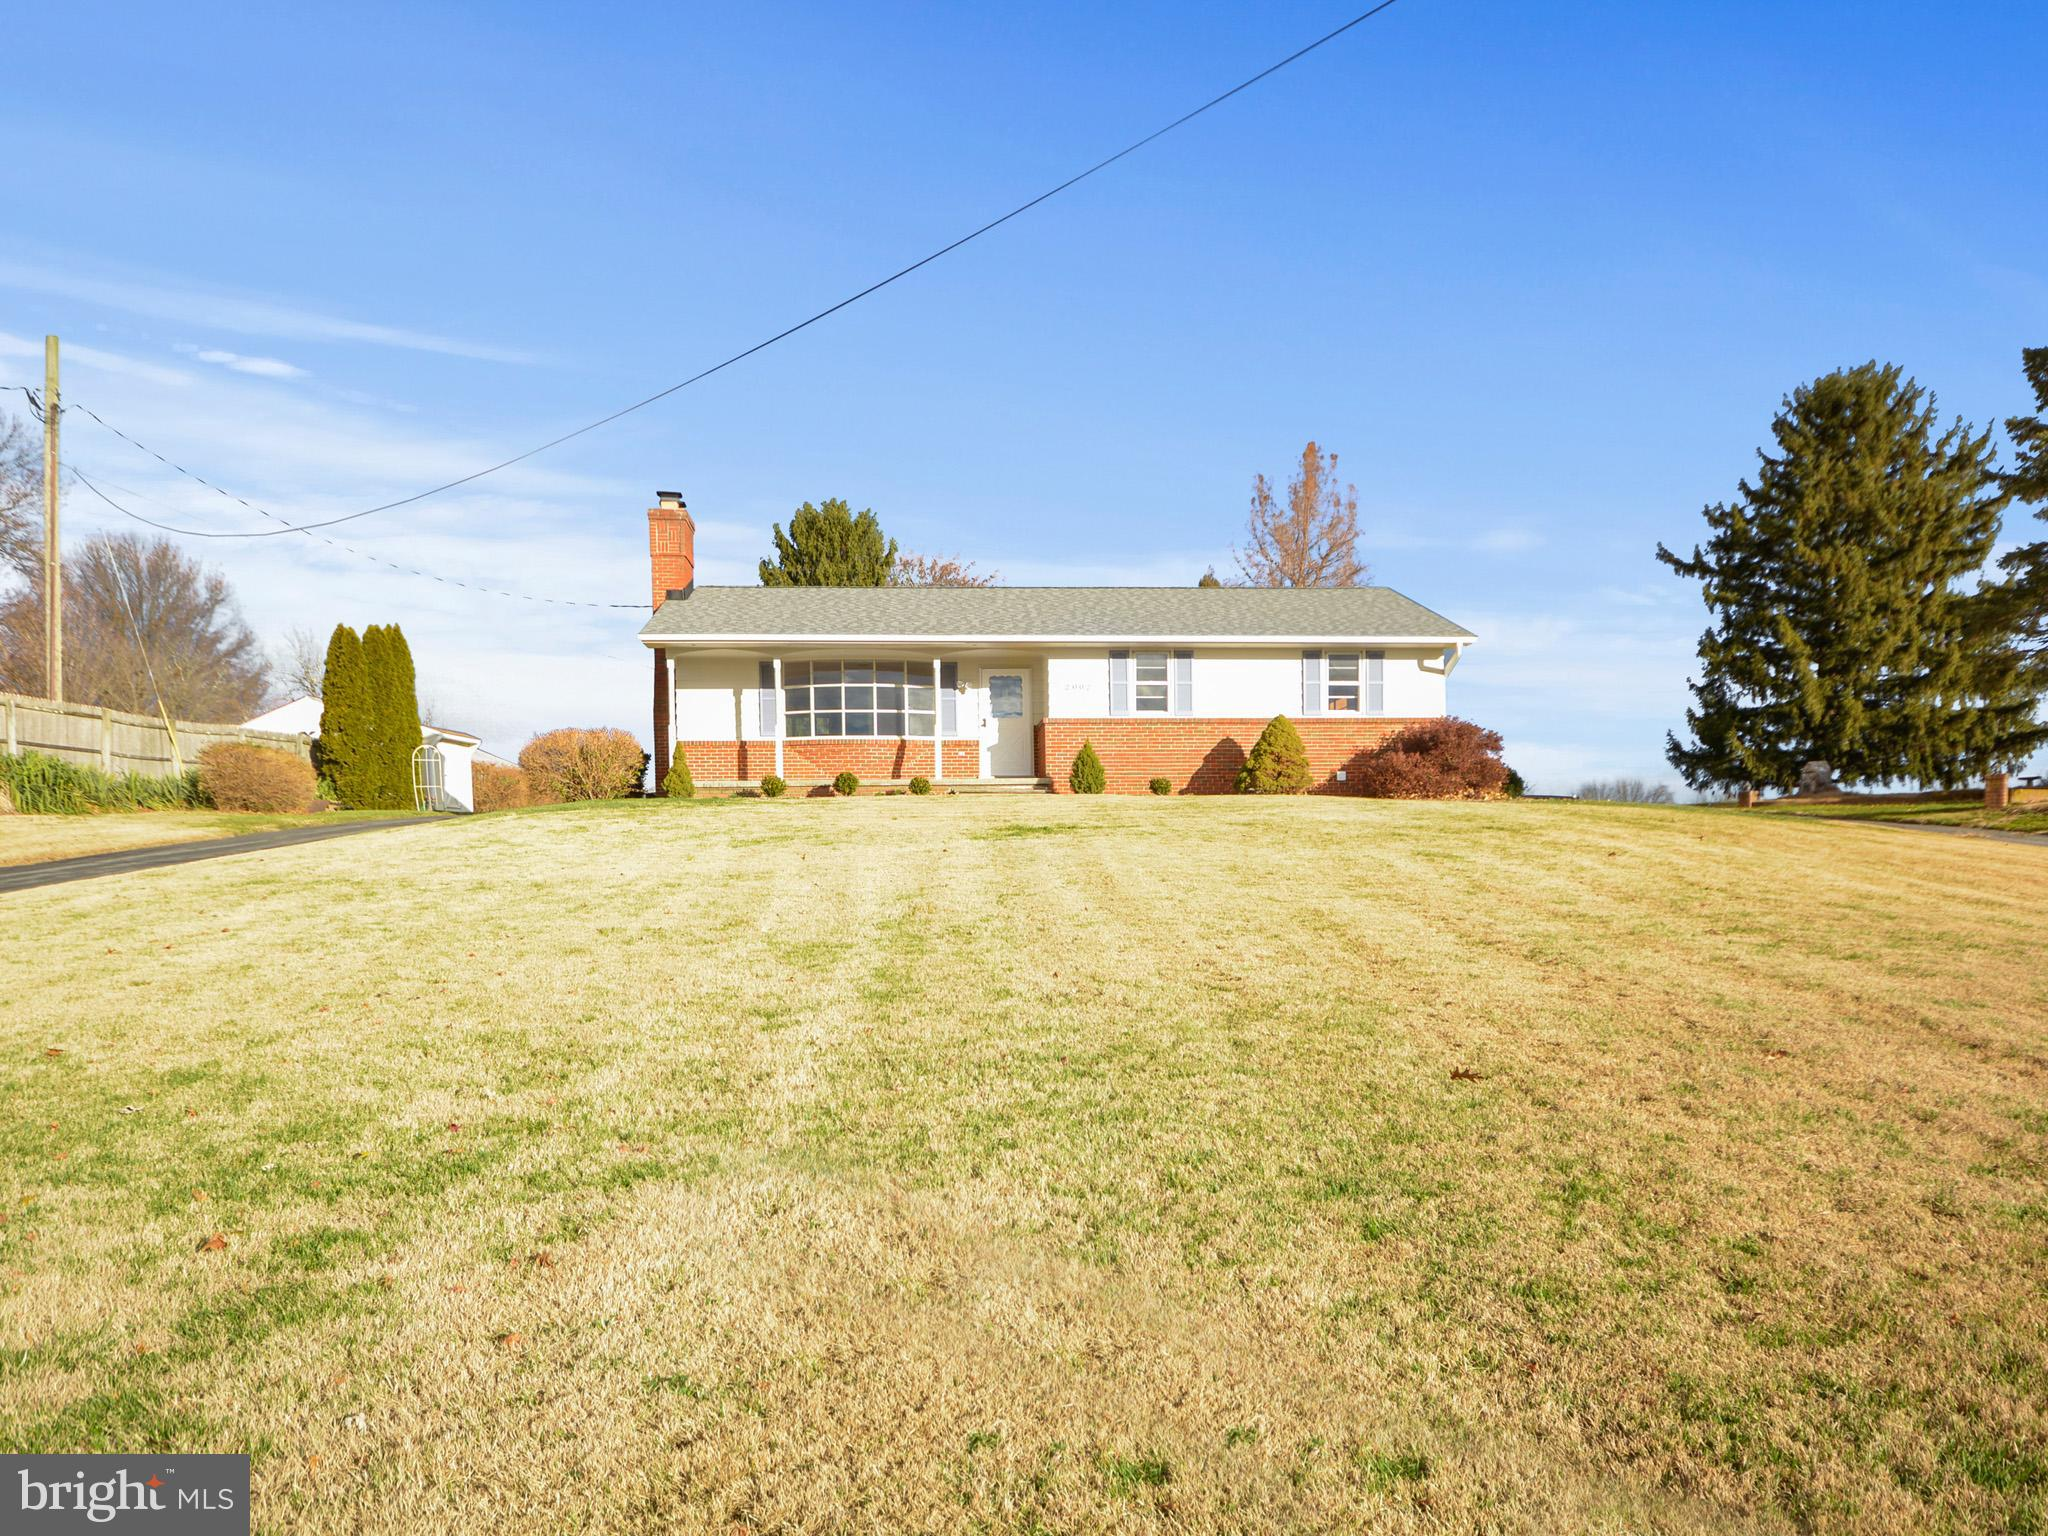 2002 POINT OF ROCKS ROAD, KNOXVILLE, MD 21758